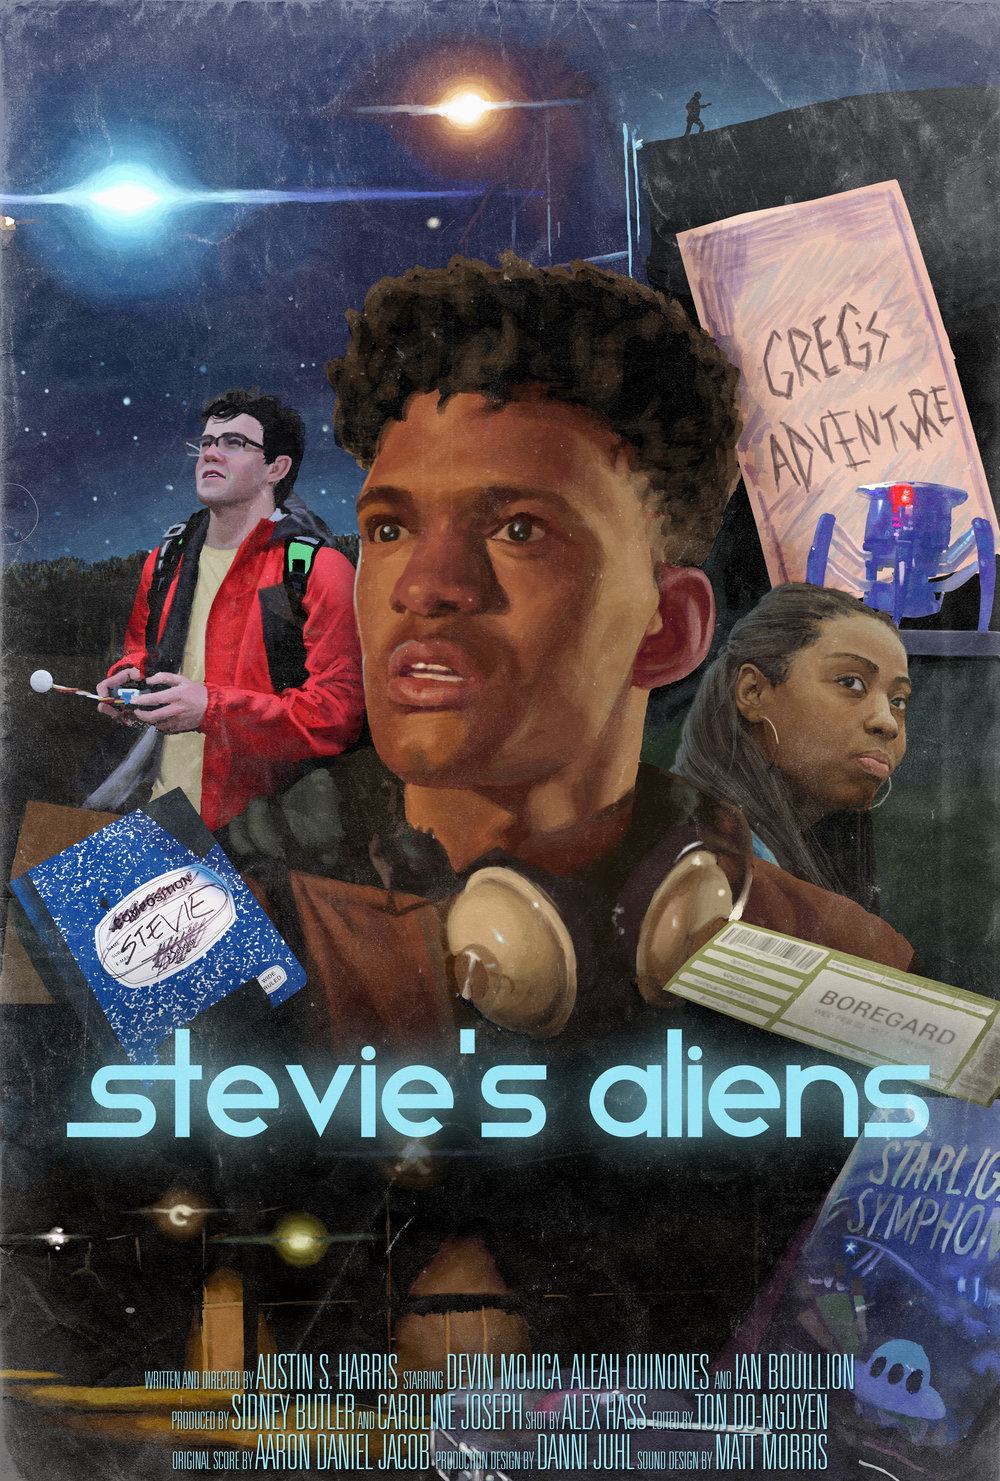 Stevie's Aliens Everett Poster.jpg